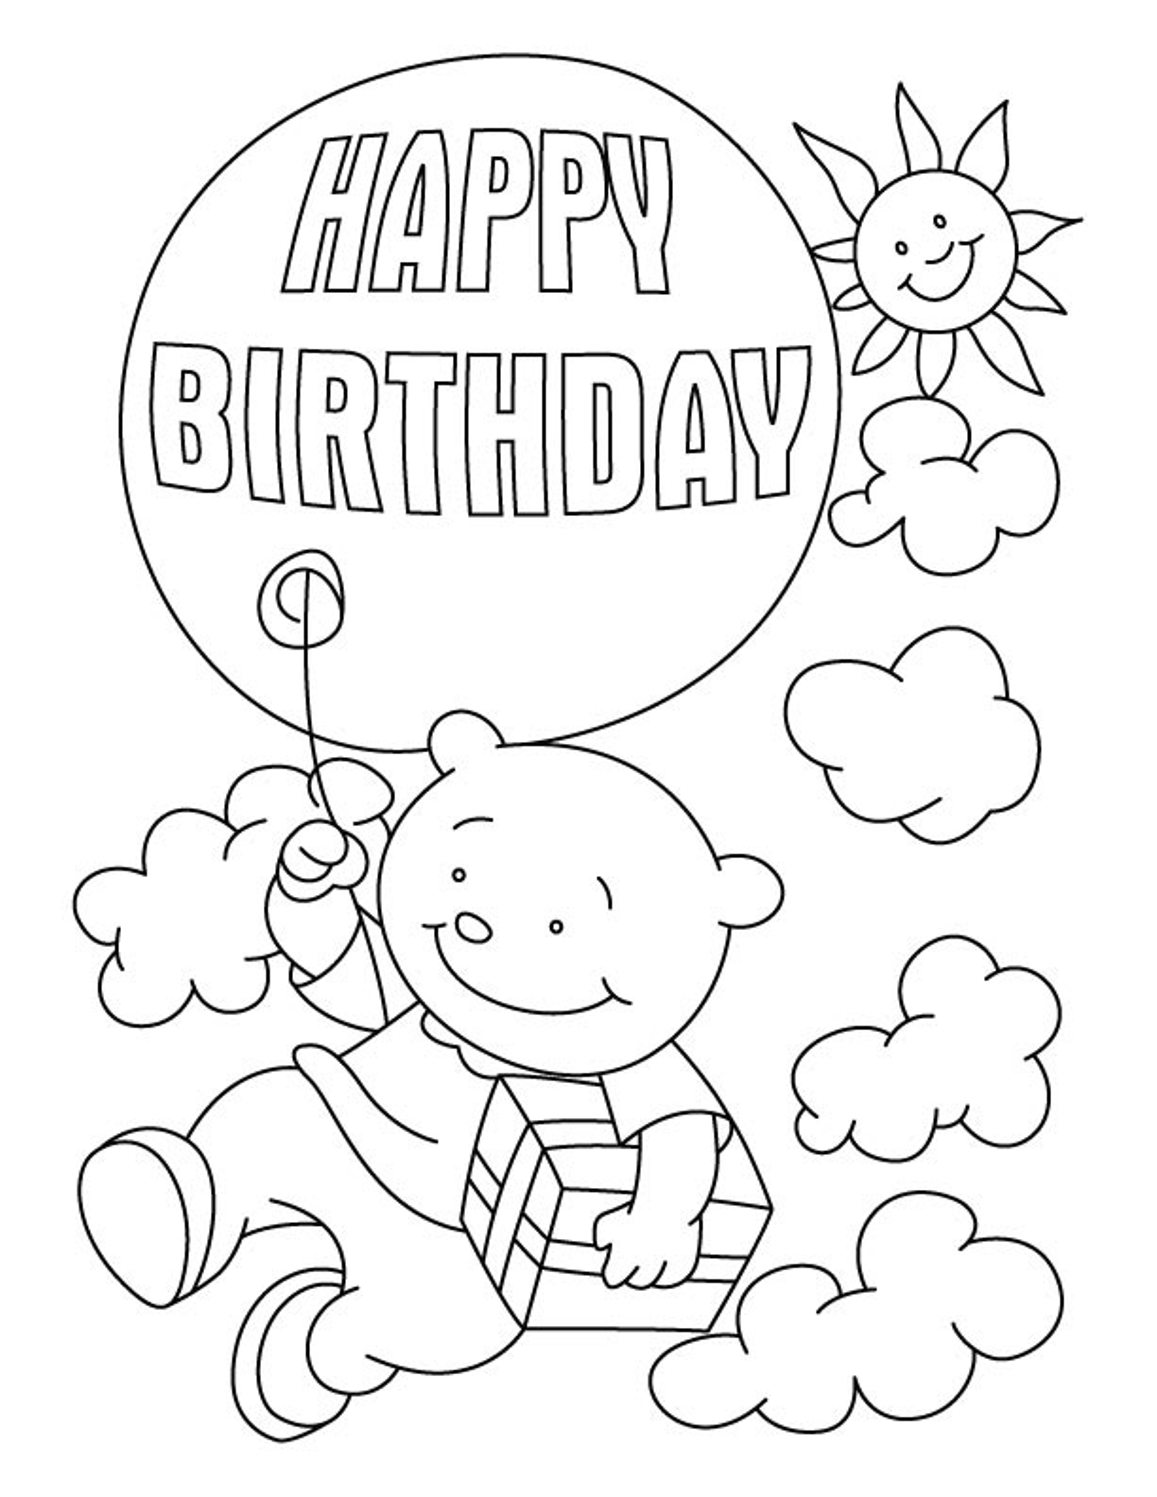 happy birthday coloring pages printable happy birthday disney coloring pages coloring home birthday coloring printable pages happy